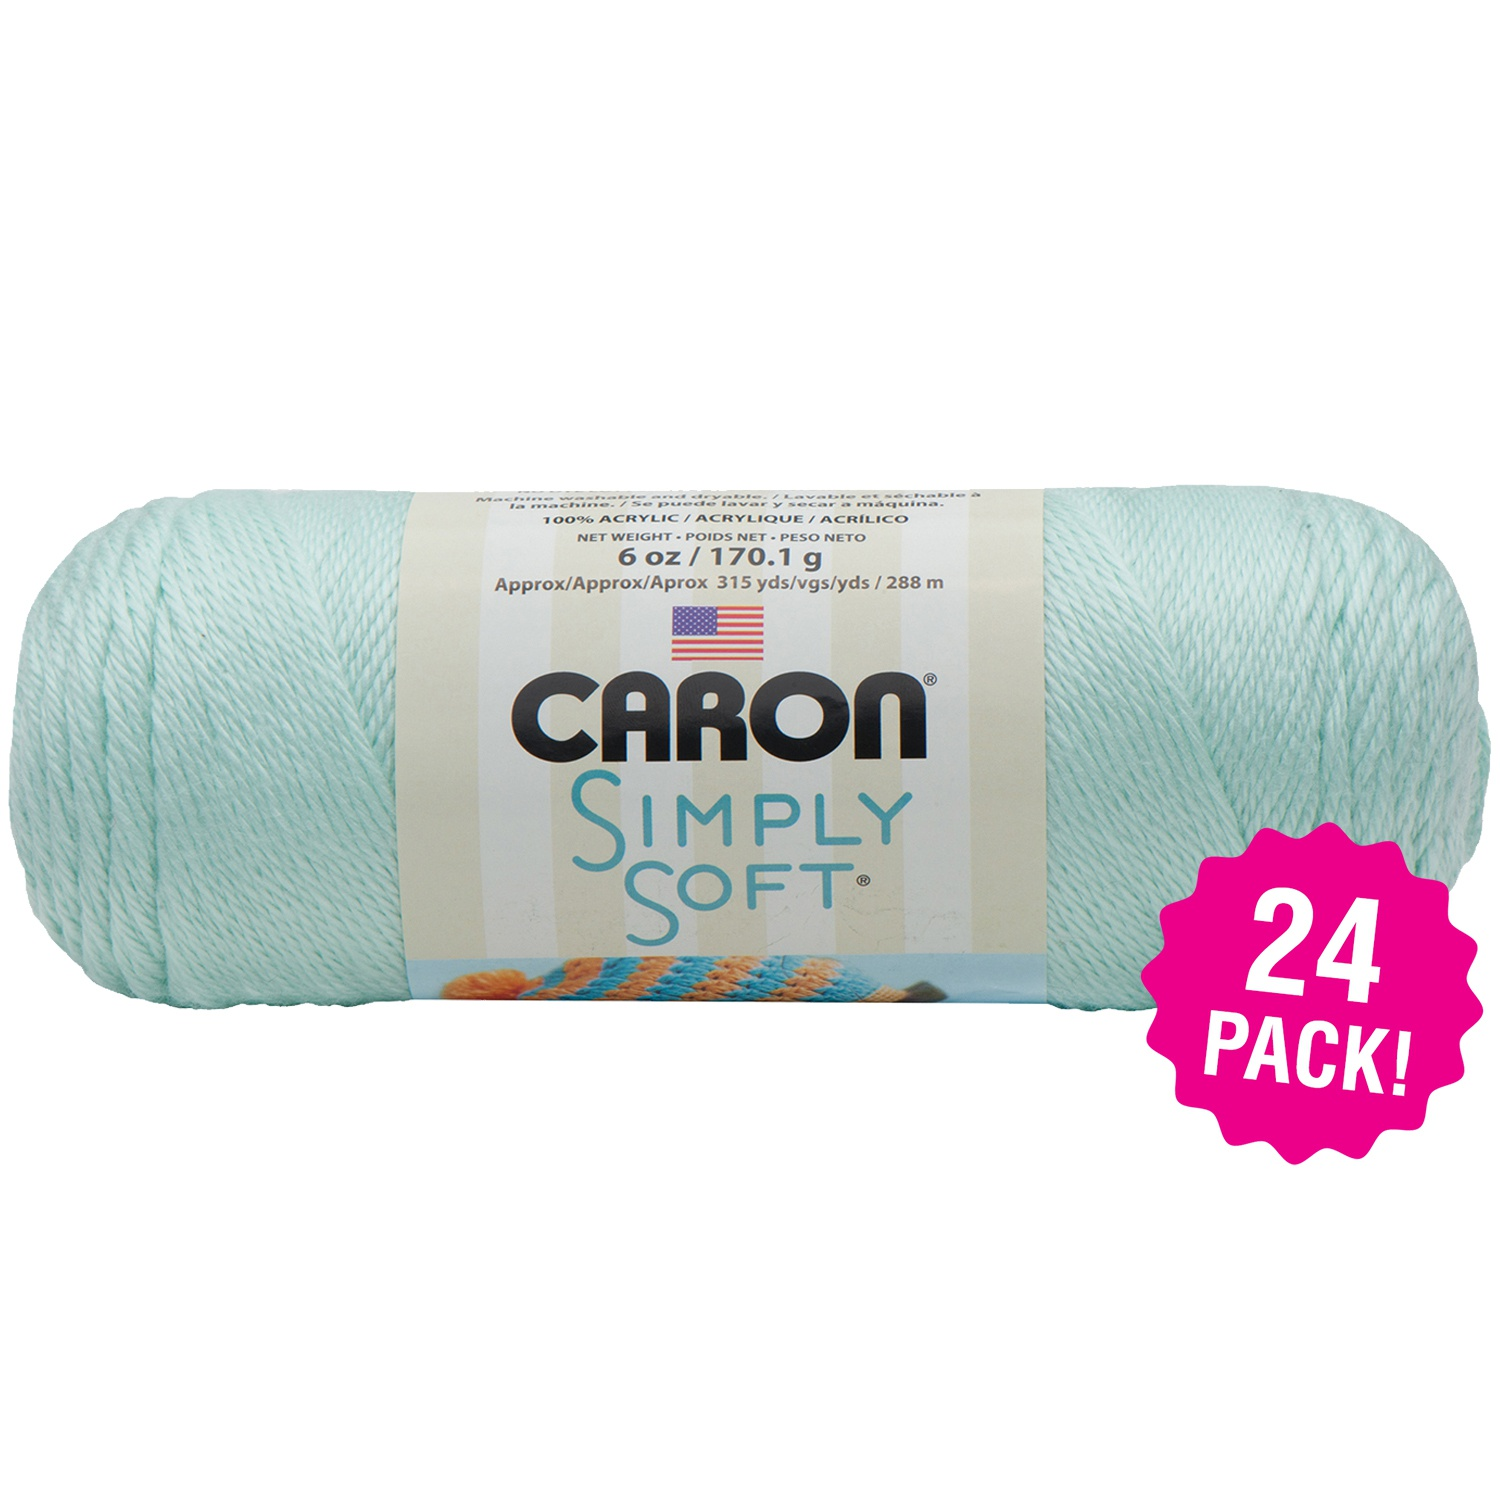 Caron Simply Soft Solids Yarn - Soft Green, Multipack of 24